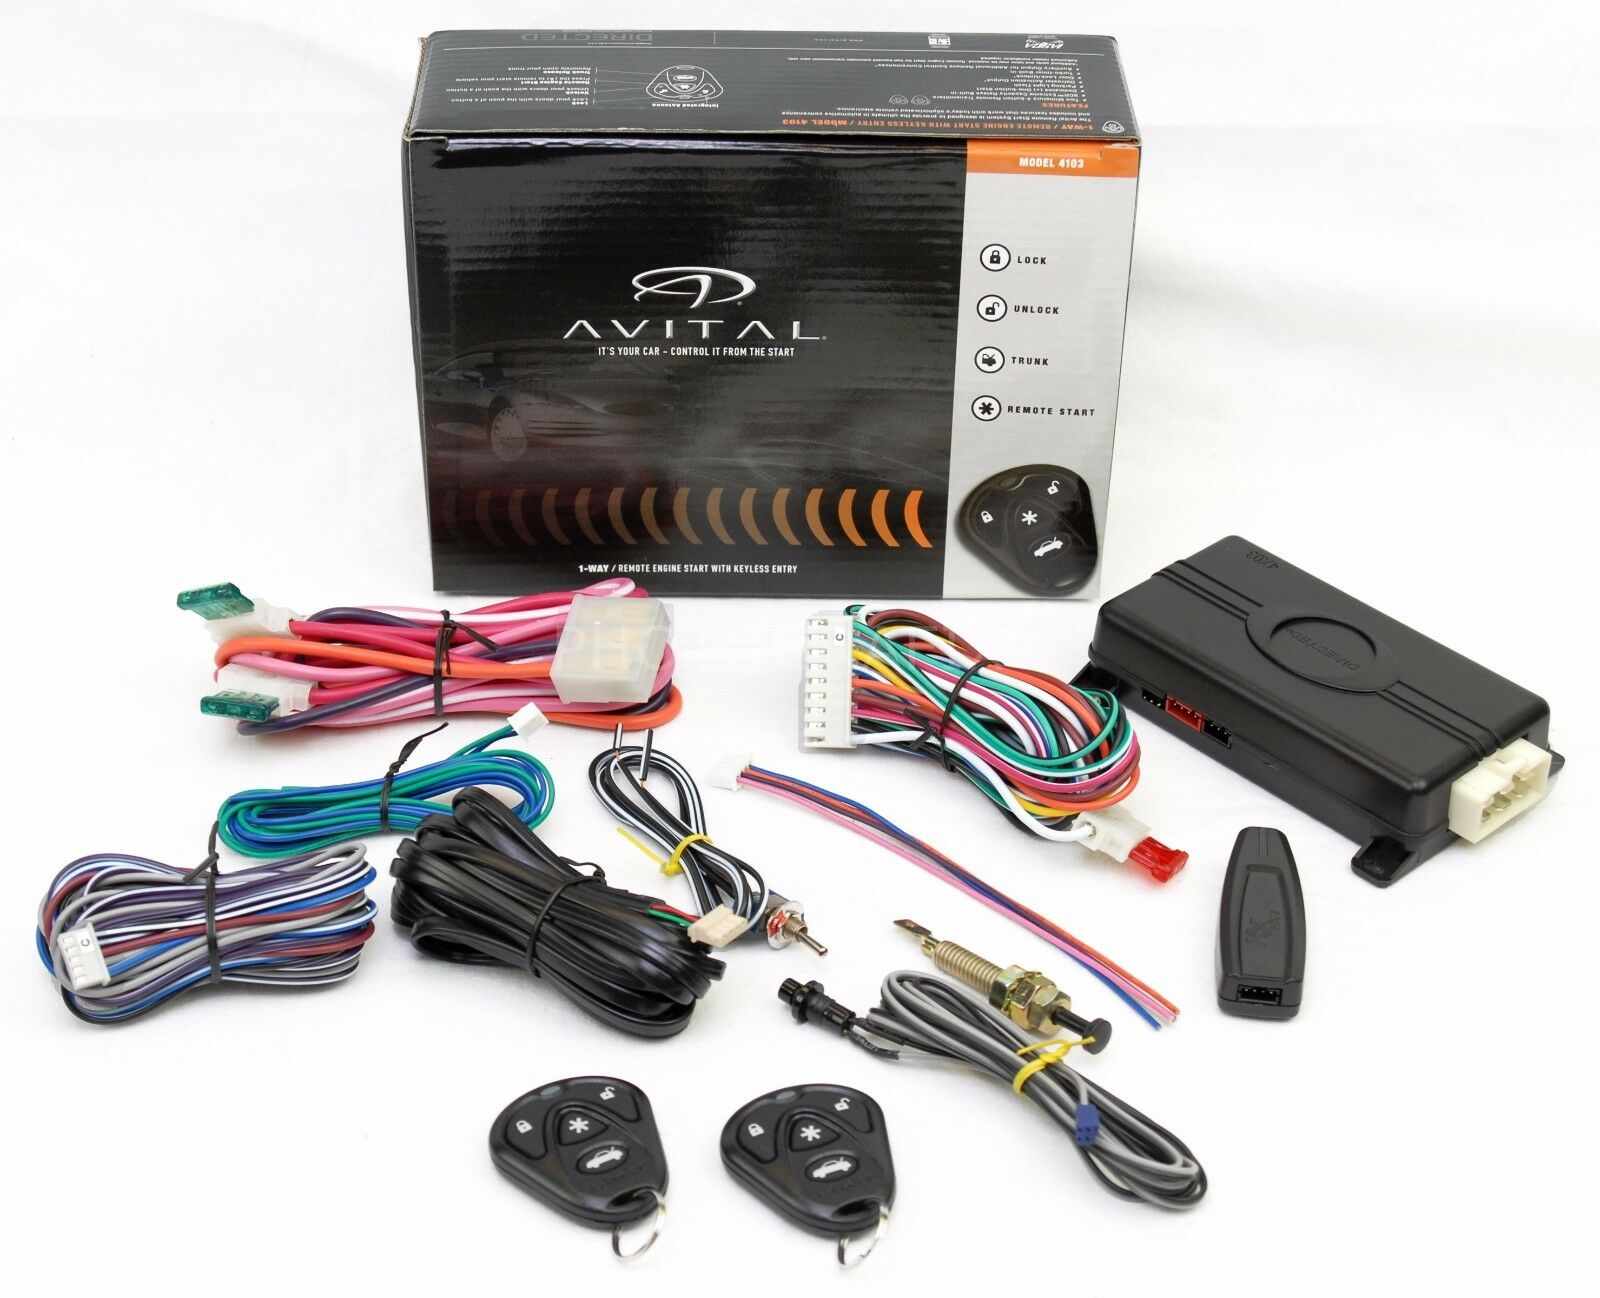 viper 4103 wiring diagram mk4 headlight 791xv alarm remote starter